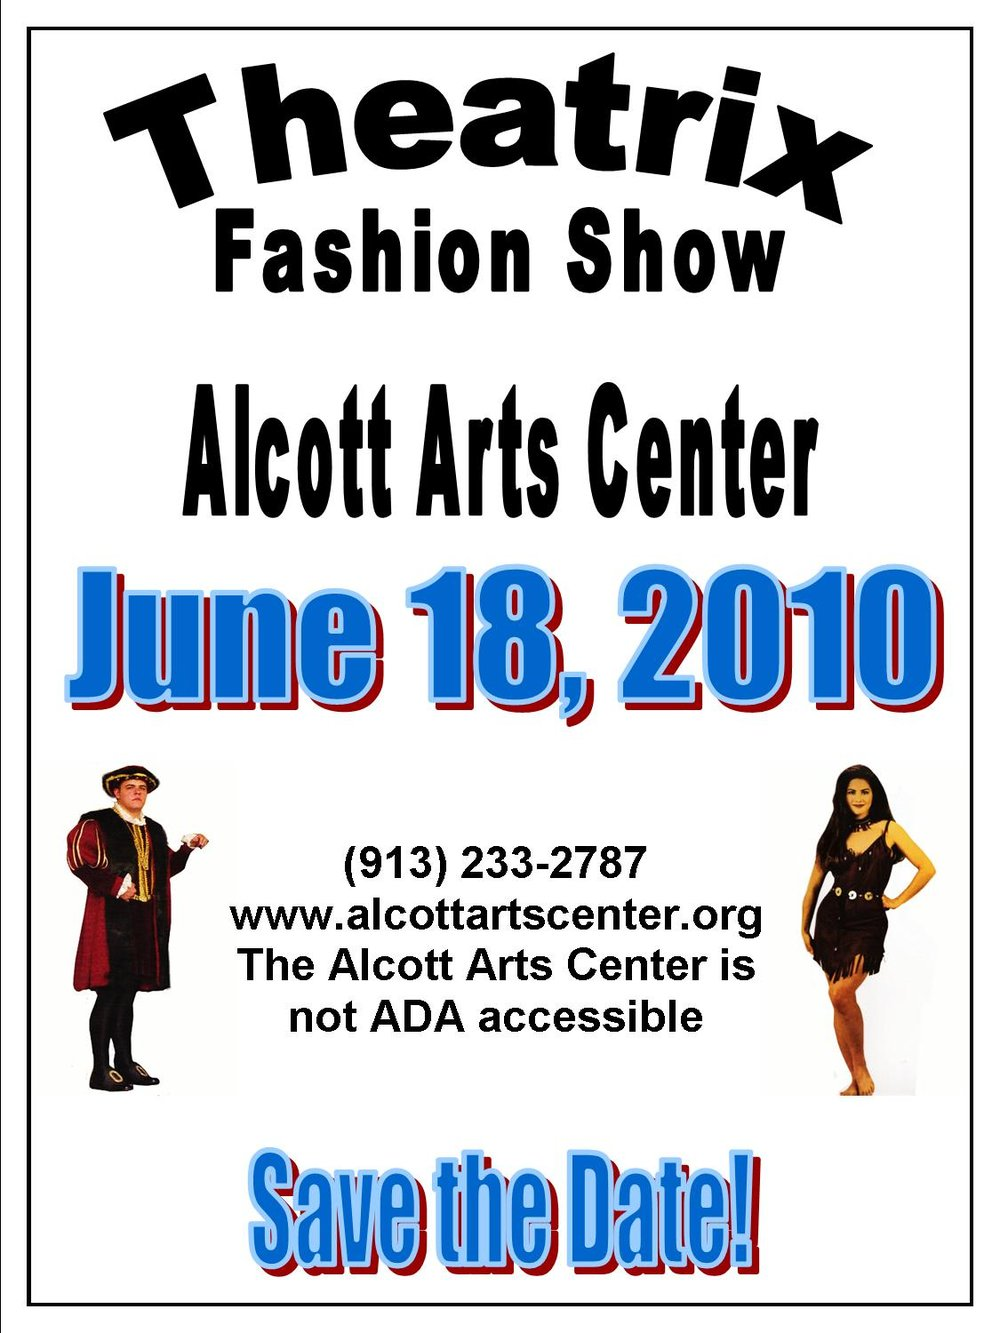 fashion show - save the date poster-1.jpg